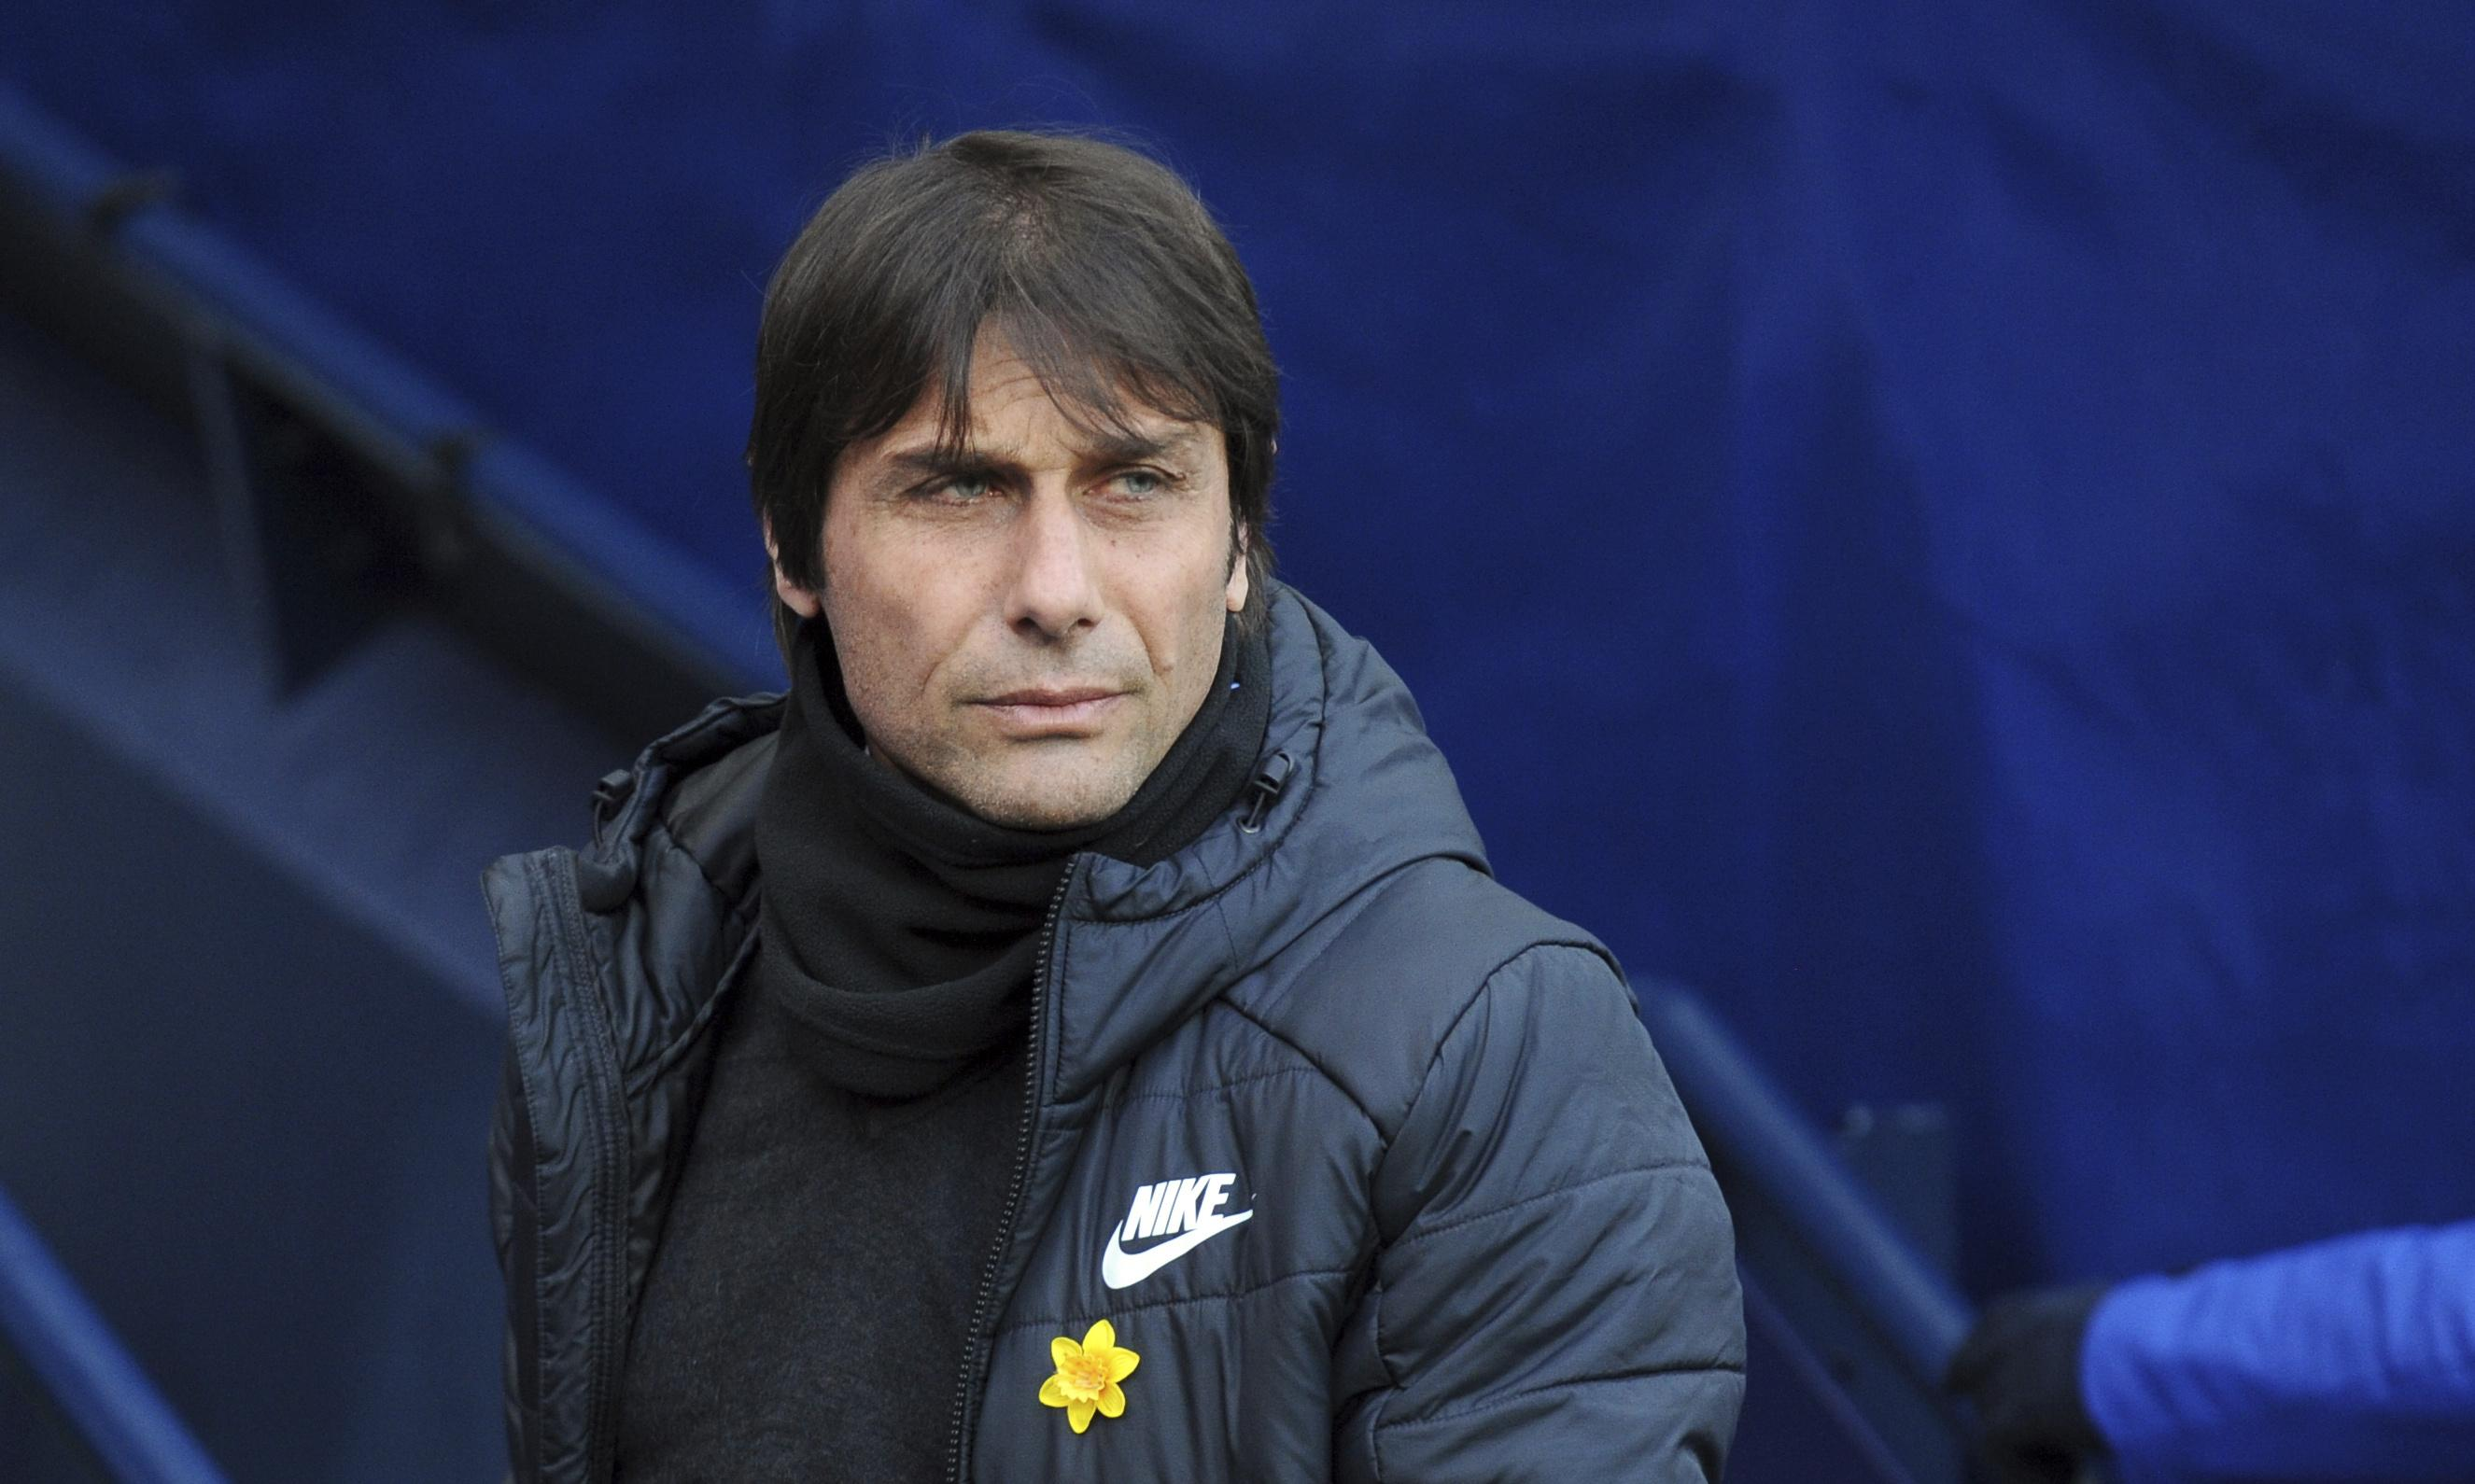 Antonio Conte set to replace Luciano Spalletti as Inter manager